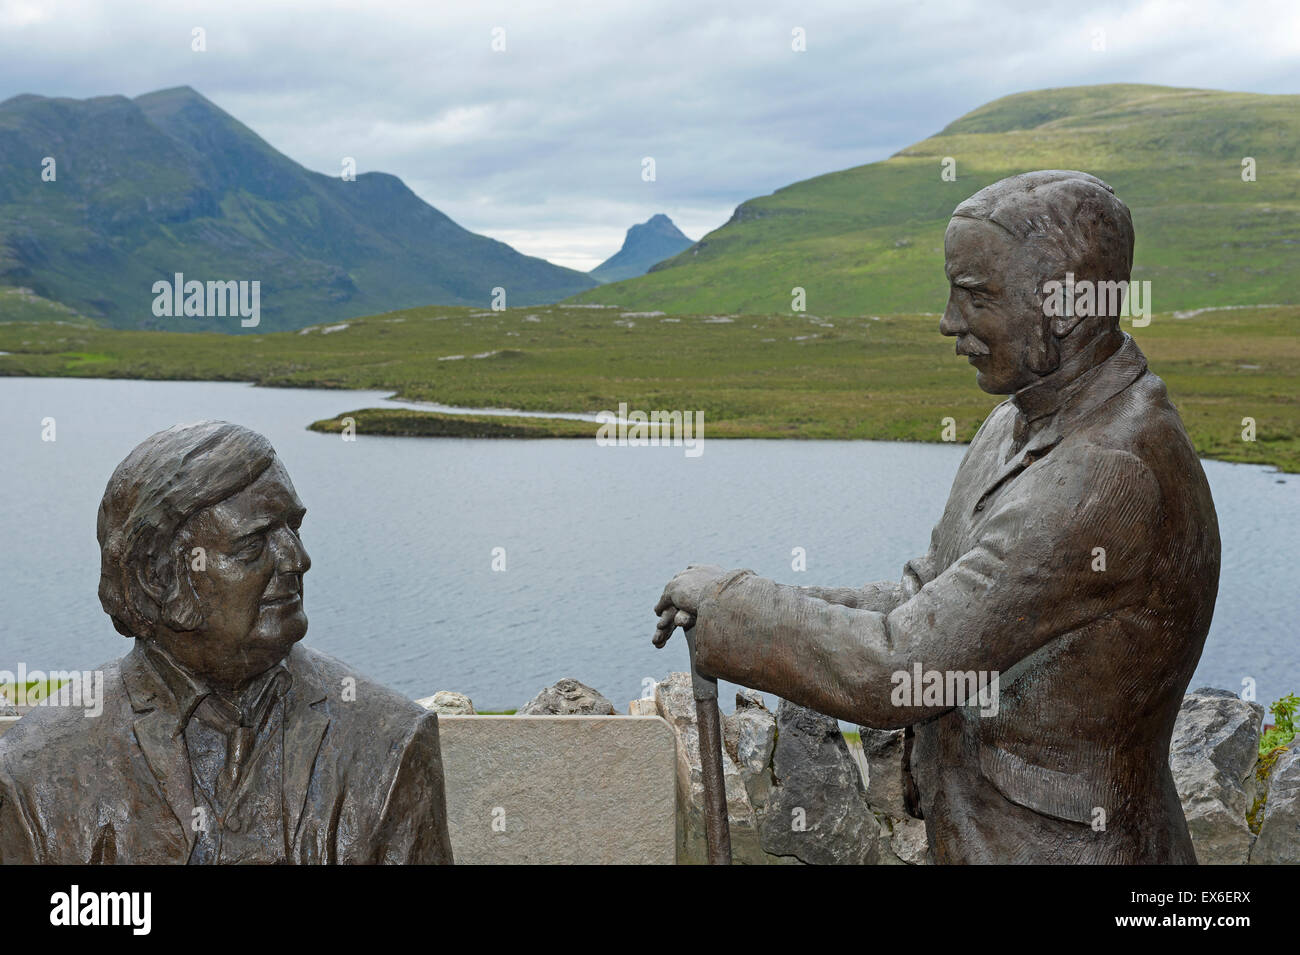 Bronze moldings depicting early geologists evolving their theory on the Moine Thrust at the Knockan Crag site.  Stock Photo